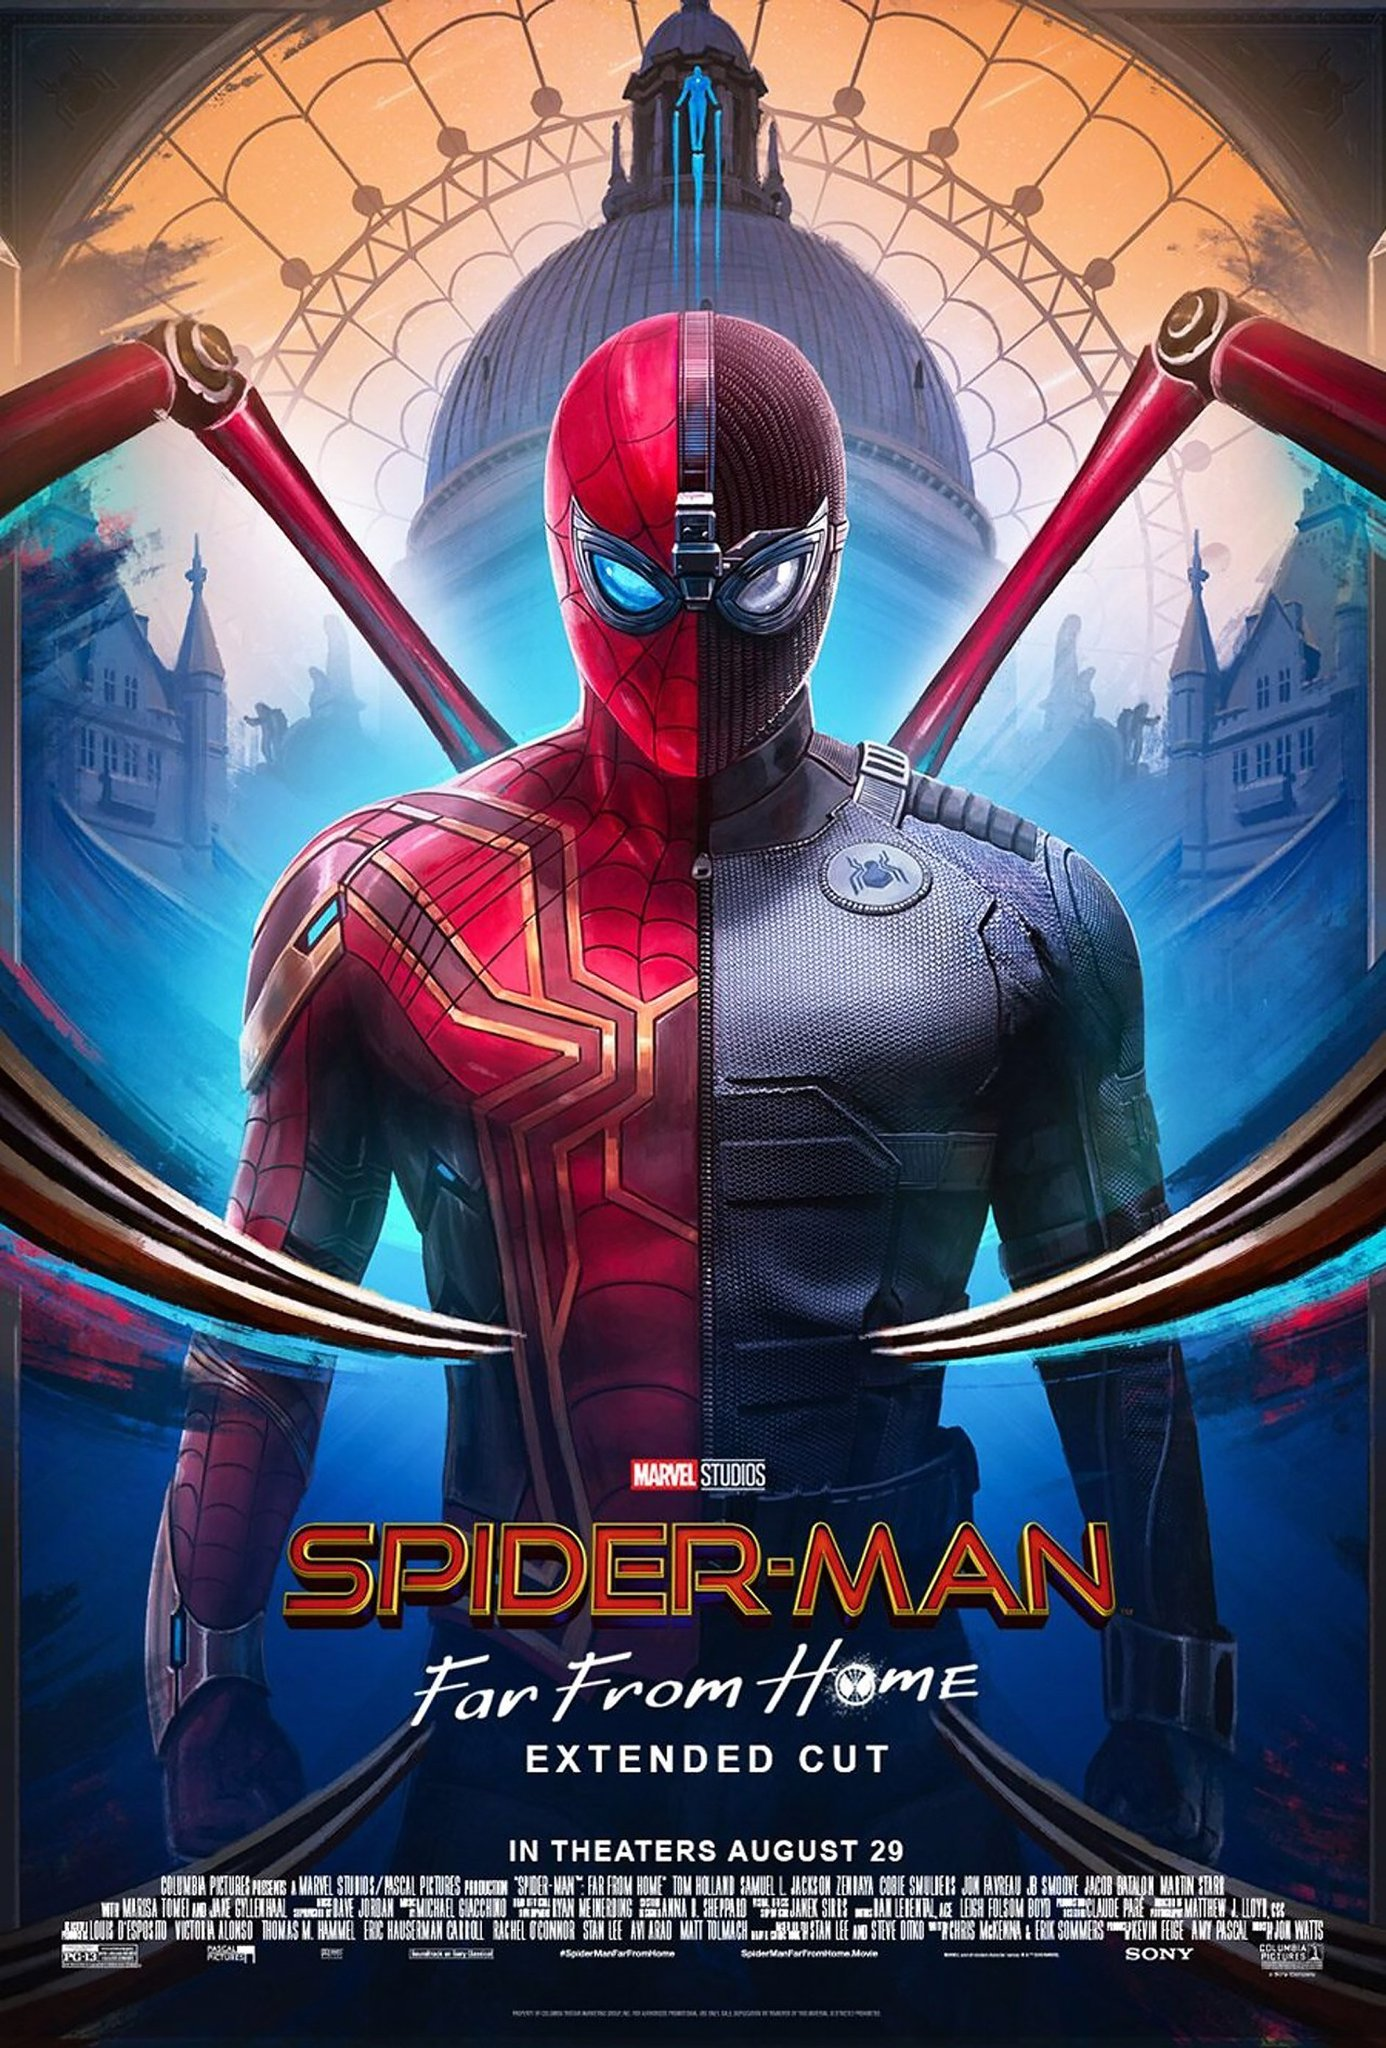 Spider-Man Far From Home Extended Cut Poster